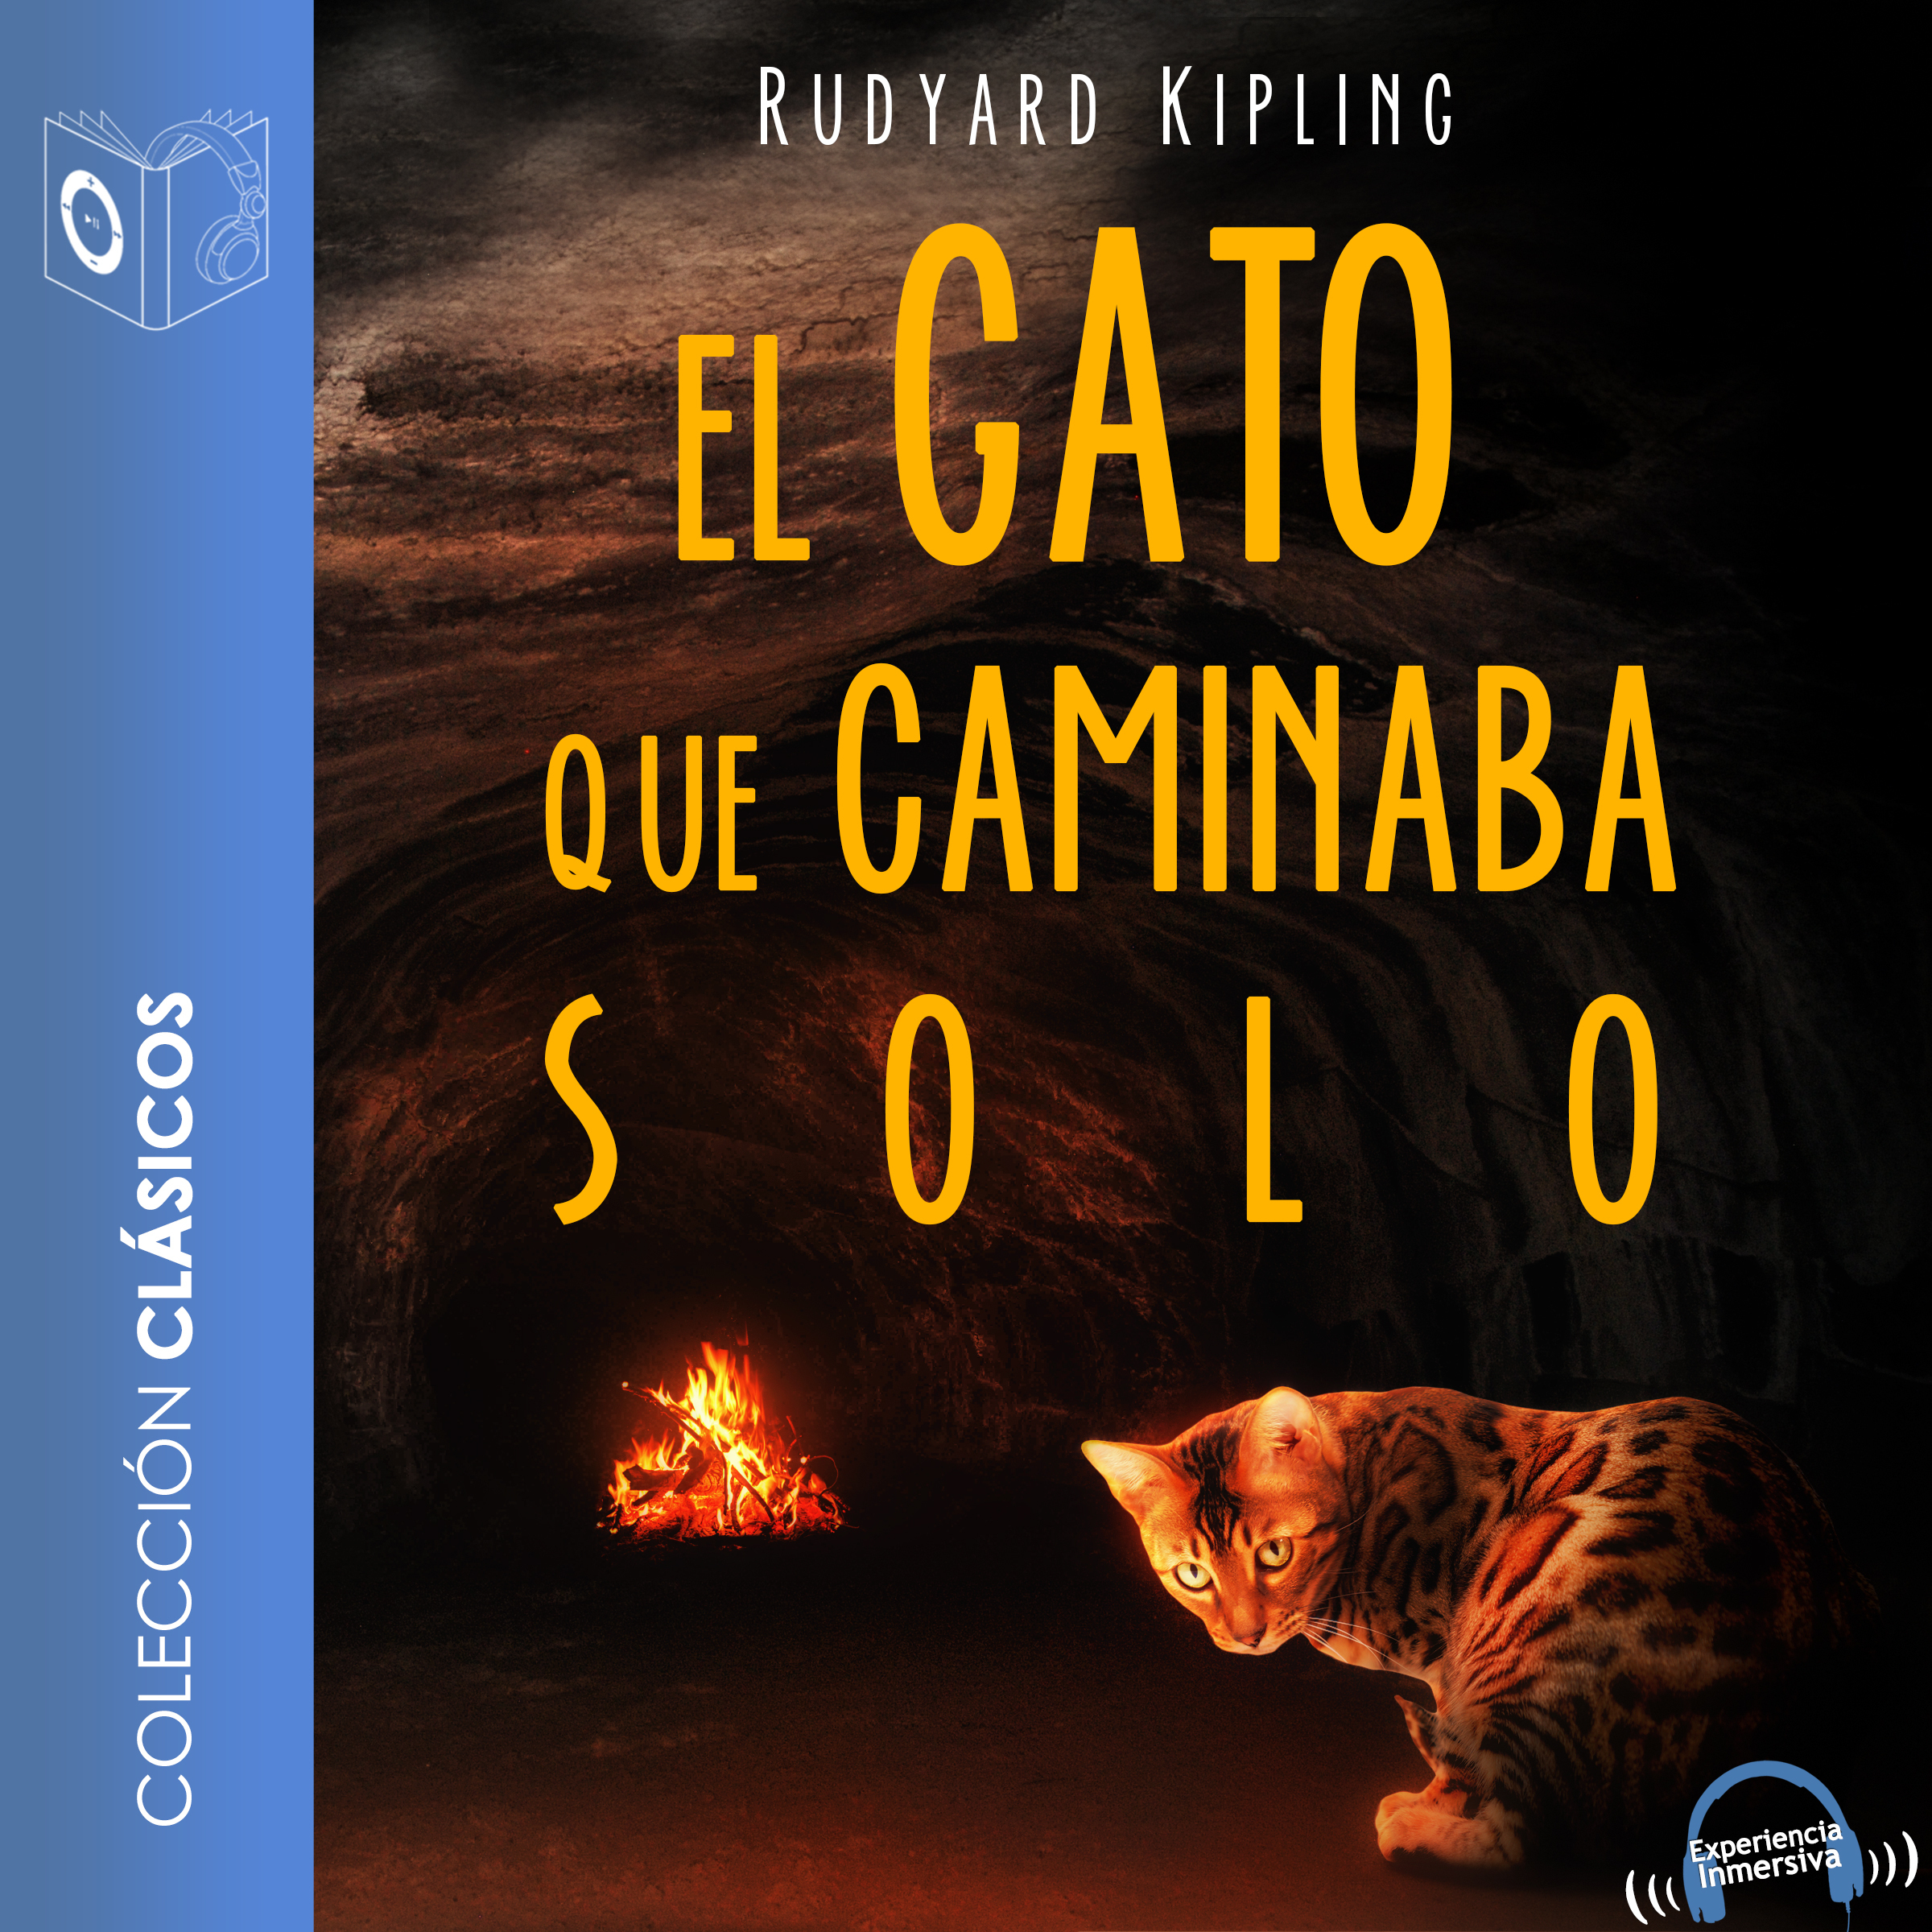 Printable El gato que caminaba solo Audiobook Cover Art